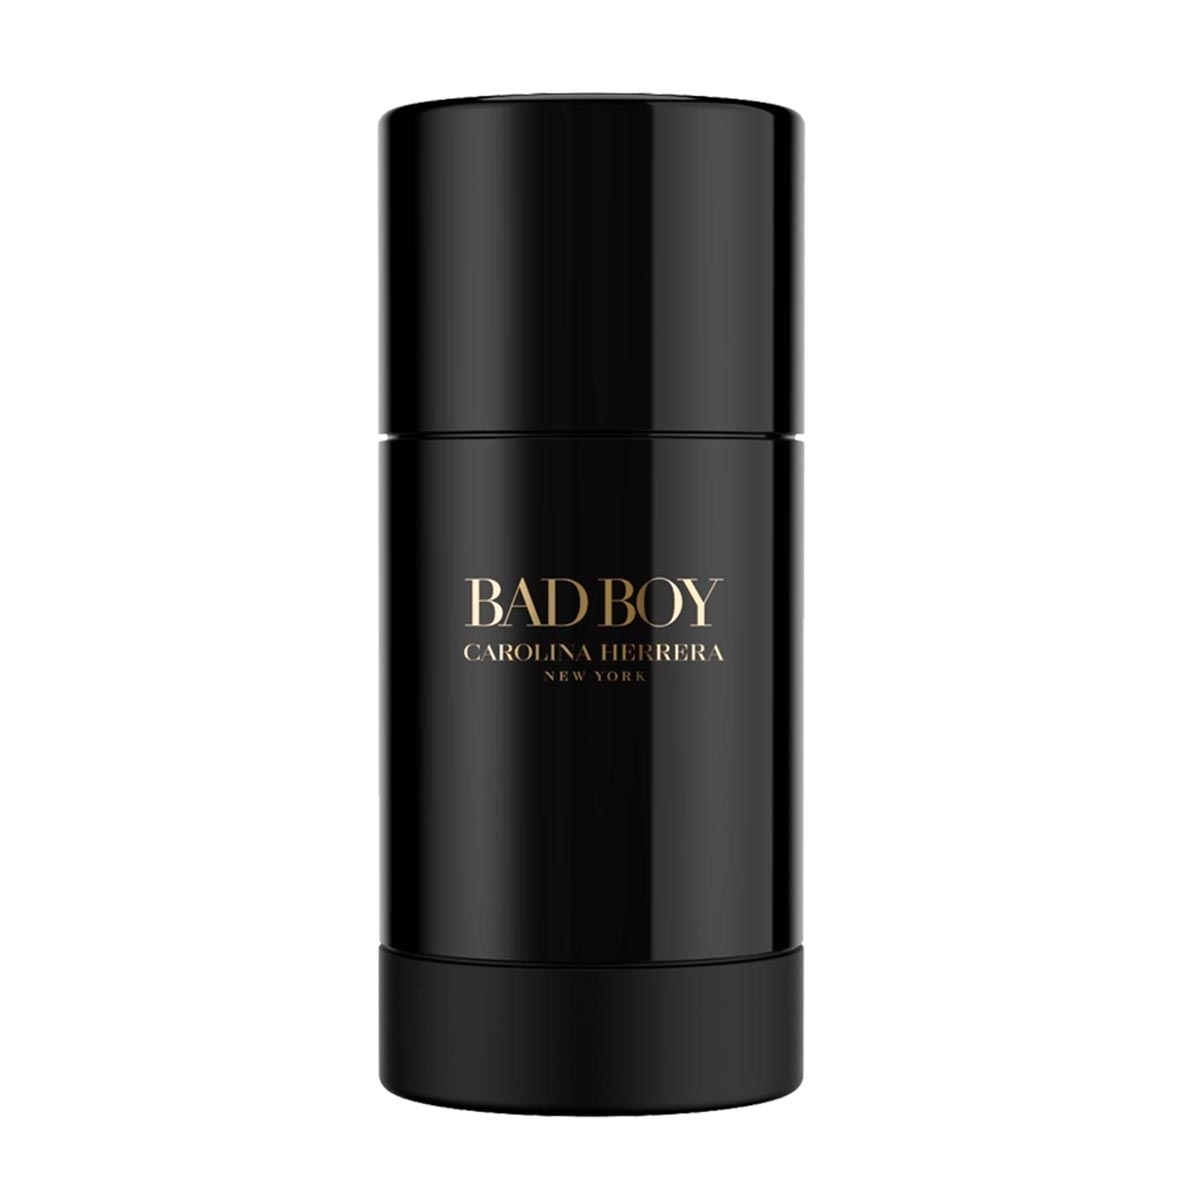 Carolina herrera bad boy desodorante stick 75ml